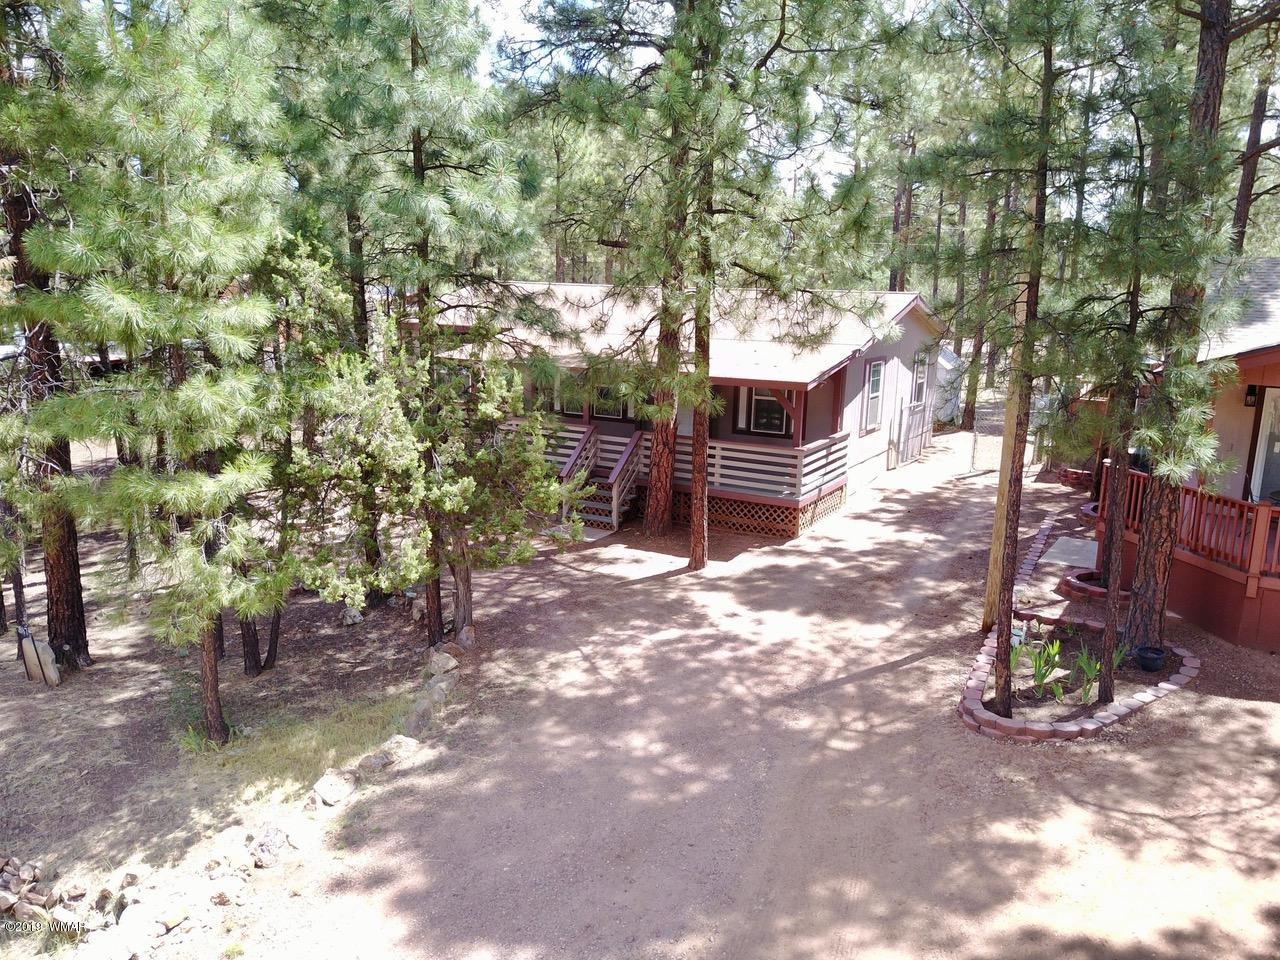 You will fall in love with this spacious manufactured home that has been well-maintained andhas lots of towering ponderosa pines on the property; offers a 3BDR/2BA split floor planwith a separate laundry room and open living area, large covered deck to sit out andentertain in the beautiful rim country. This home would be the perfect summer get away or a fine place to call home year round.